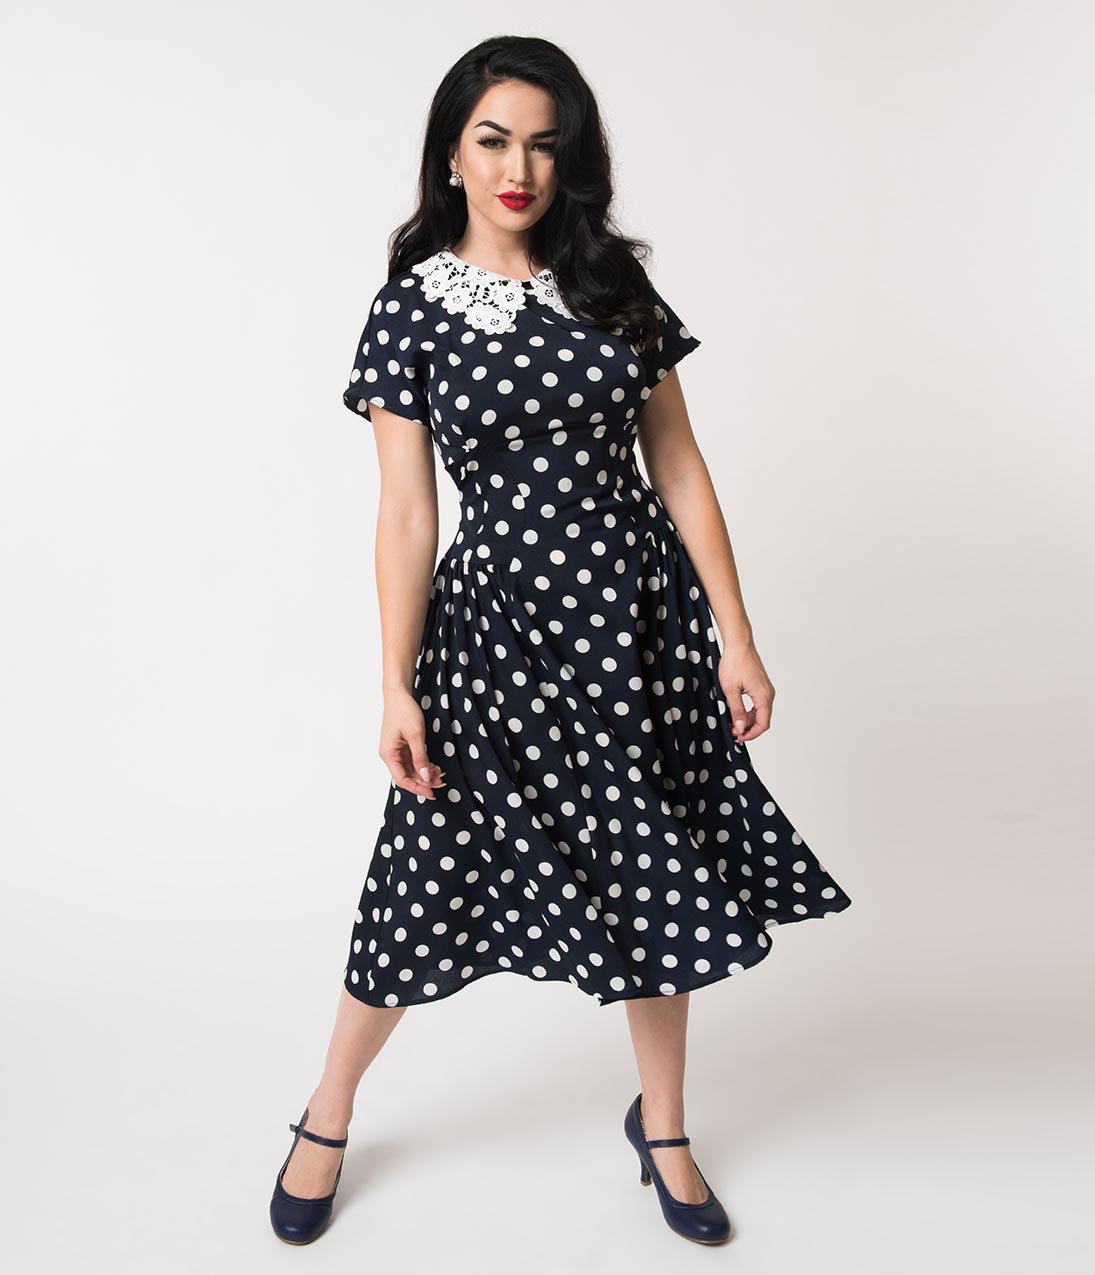 Swing Dance Clothing You Can Dance In Unique Vintage 1940S Navy  White Polka Dot Lace Collar Margie Dress $41.00 AT vintagedancer.com